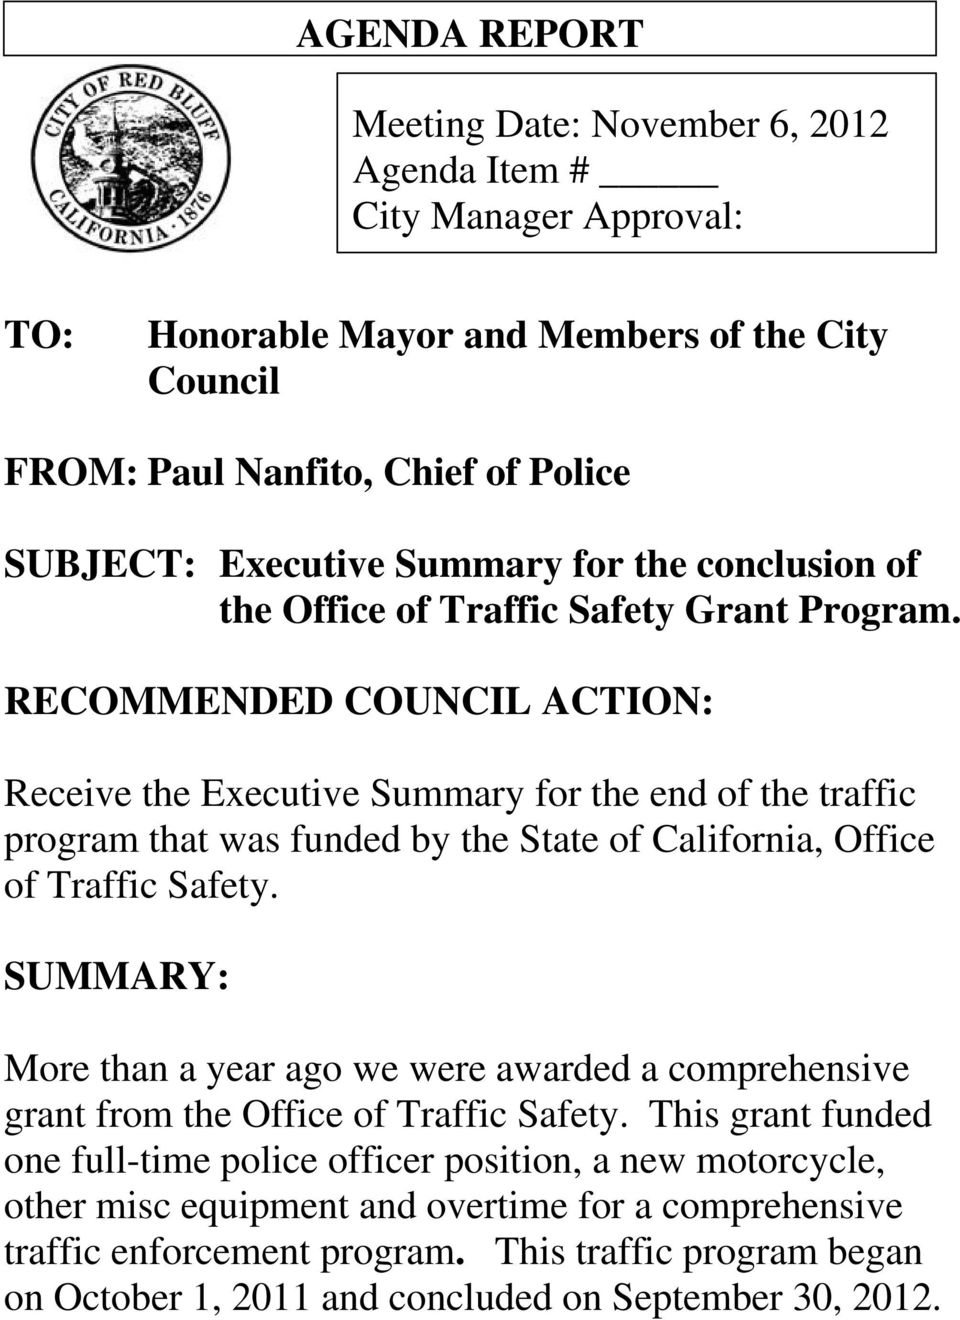 RECOMMENDED COUNCIL ACTION: Receive the Executive Summary for the end of the traffic program that was funded by the State of California, Office of Traffic Safety.